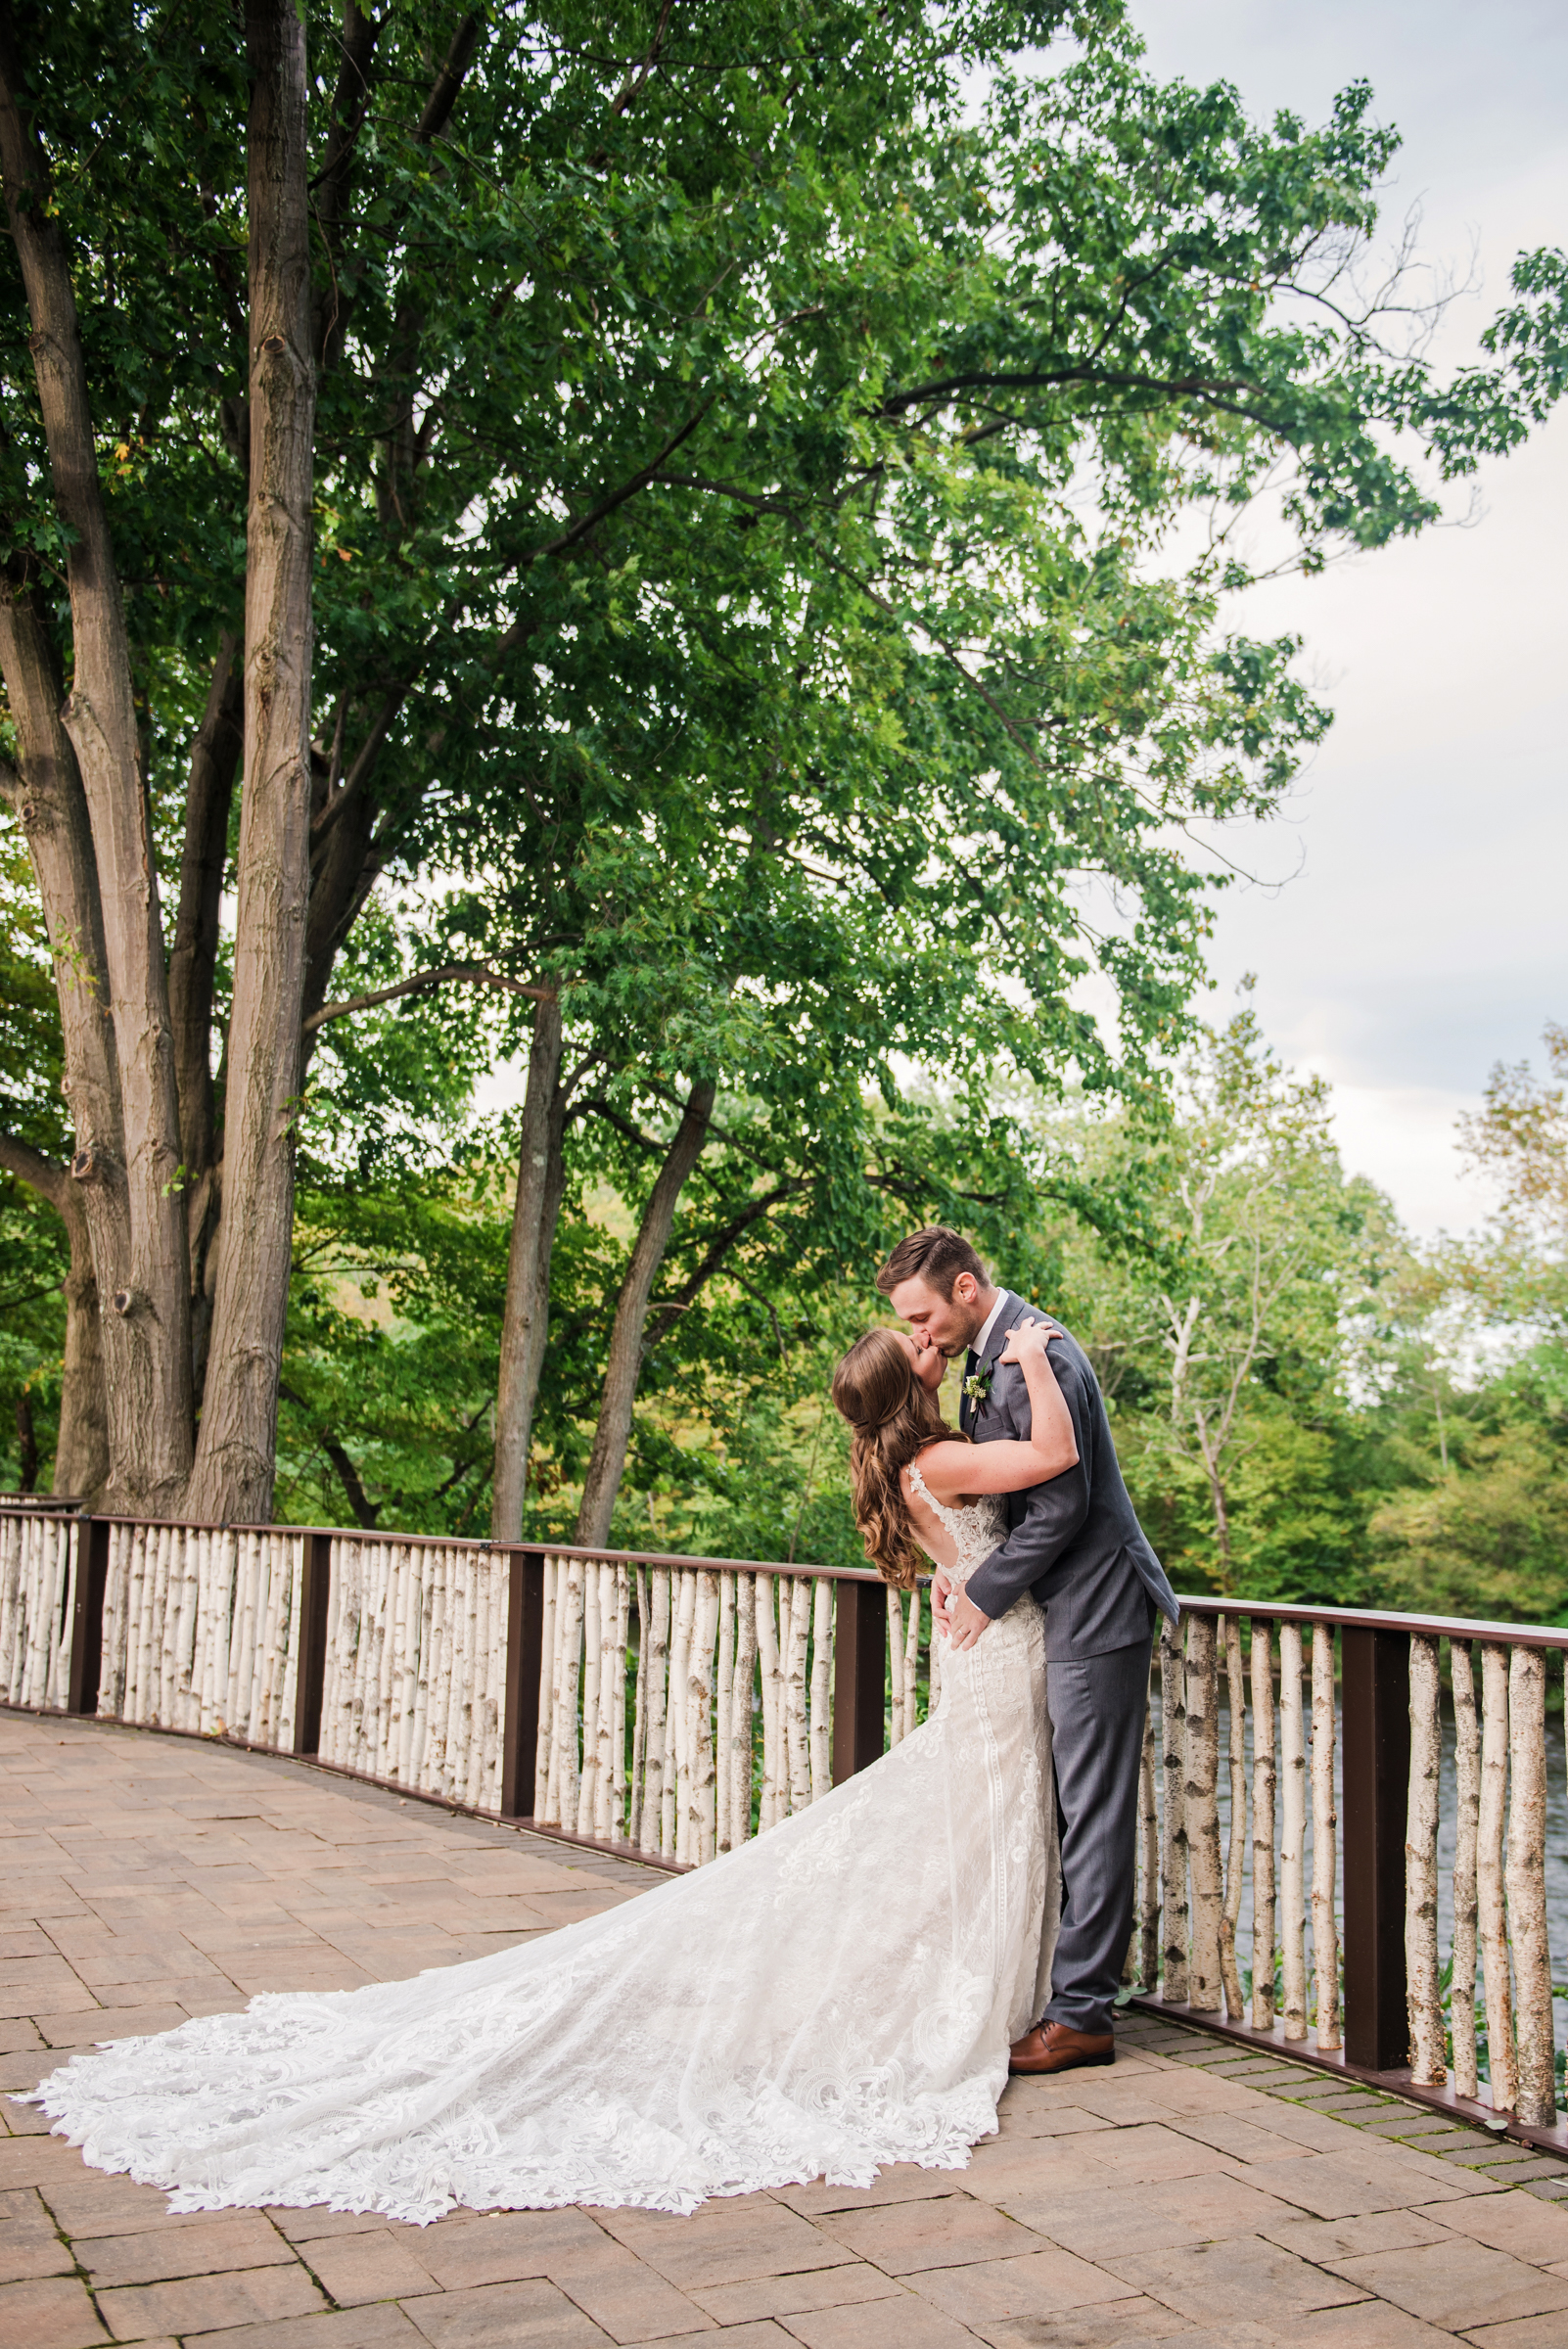 JILL_STUDIO_Wedding_JILL_STUDIO_Rochester_NY_Photographer_24-DSC_7452.jpg